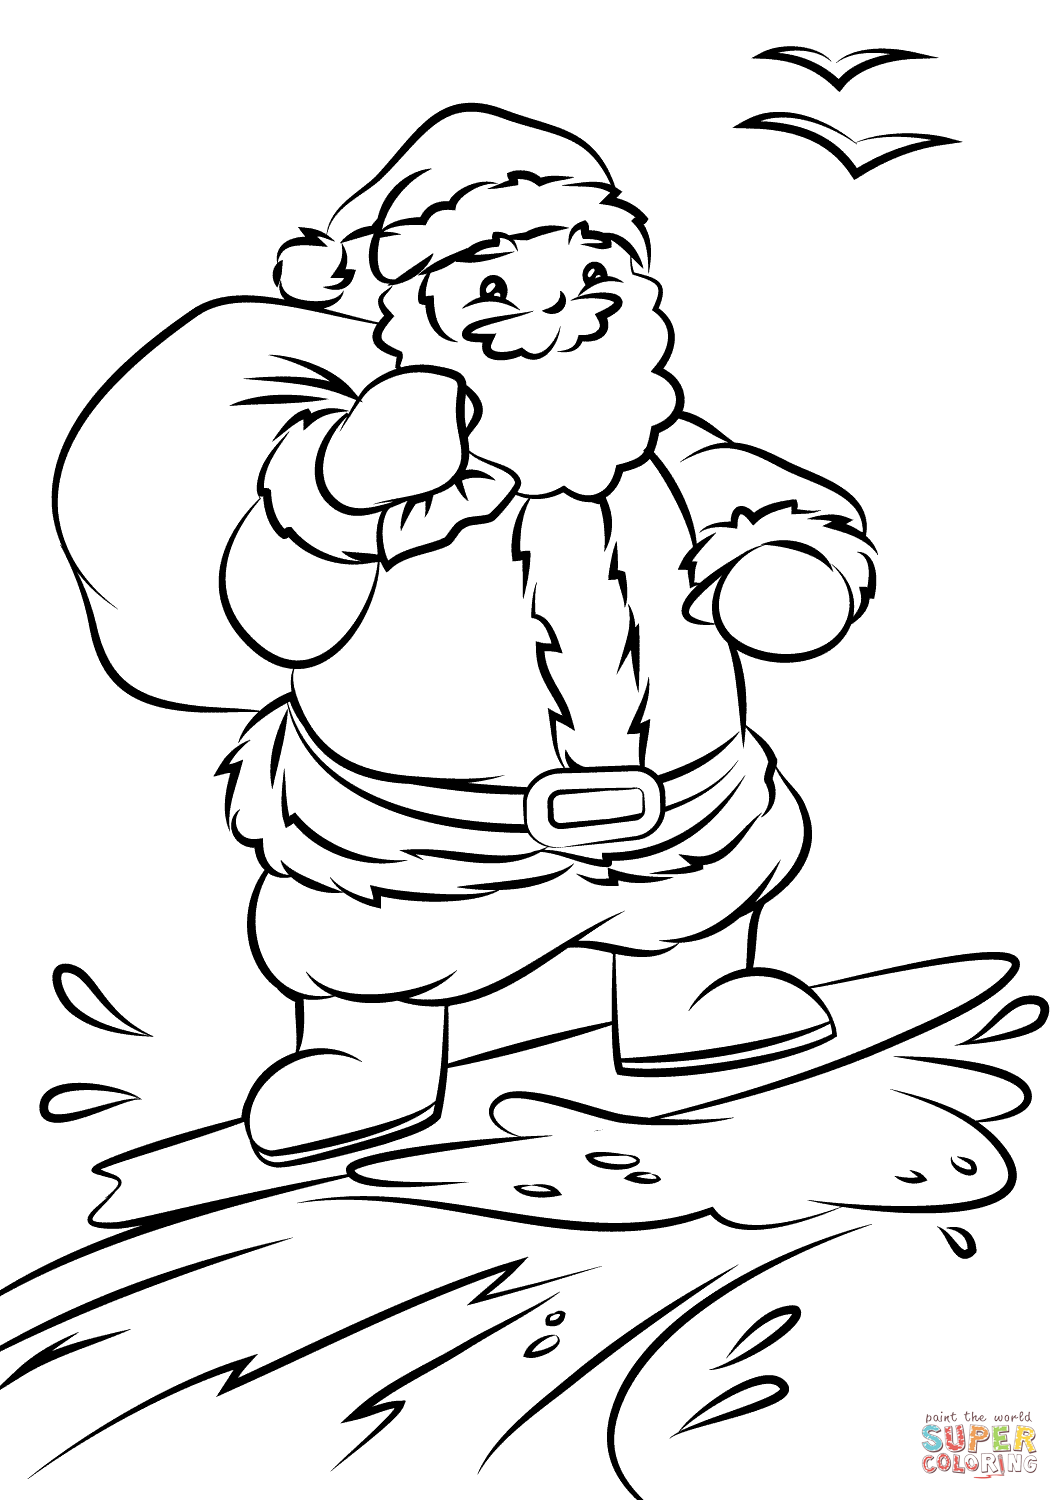 Santa Coloring Pages With Surfing Colouring Google Search Christmas STAMPS